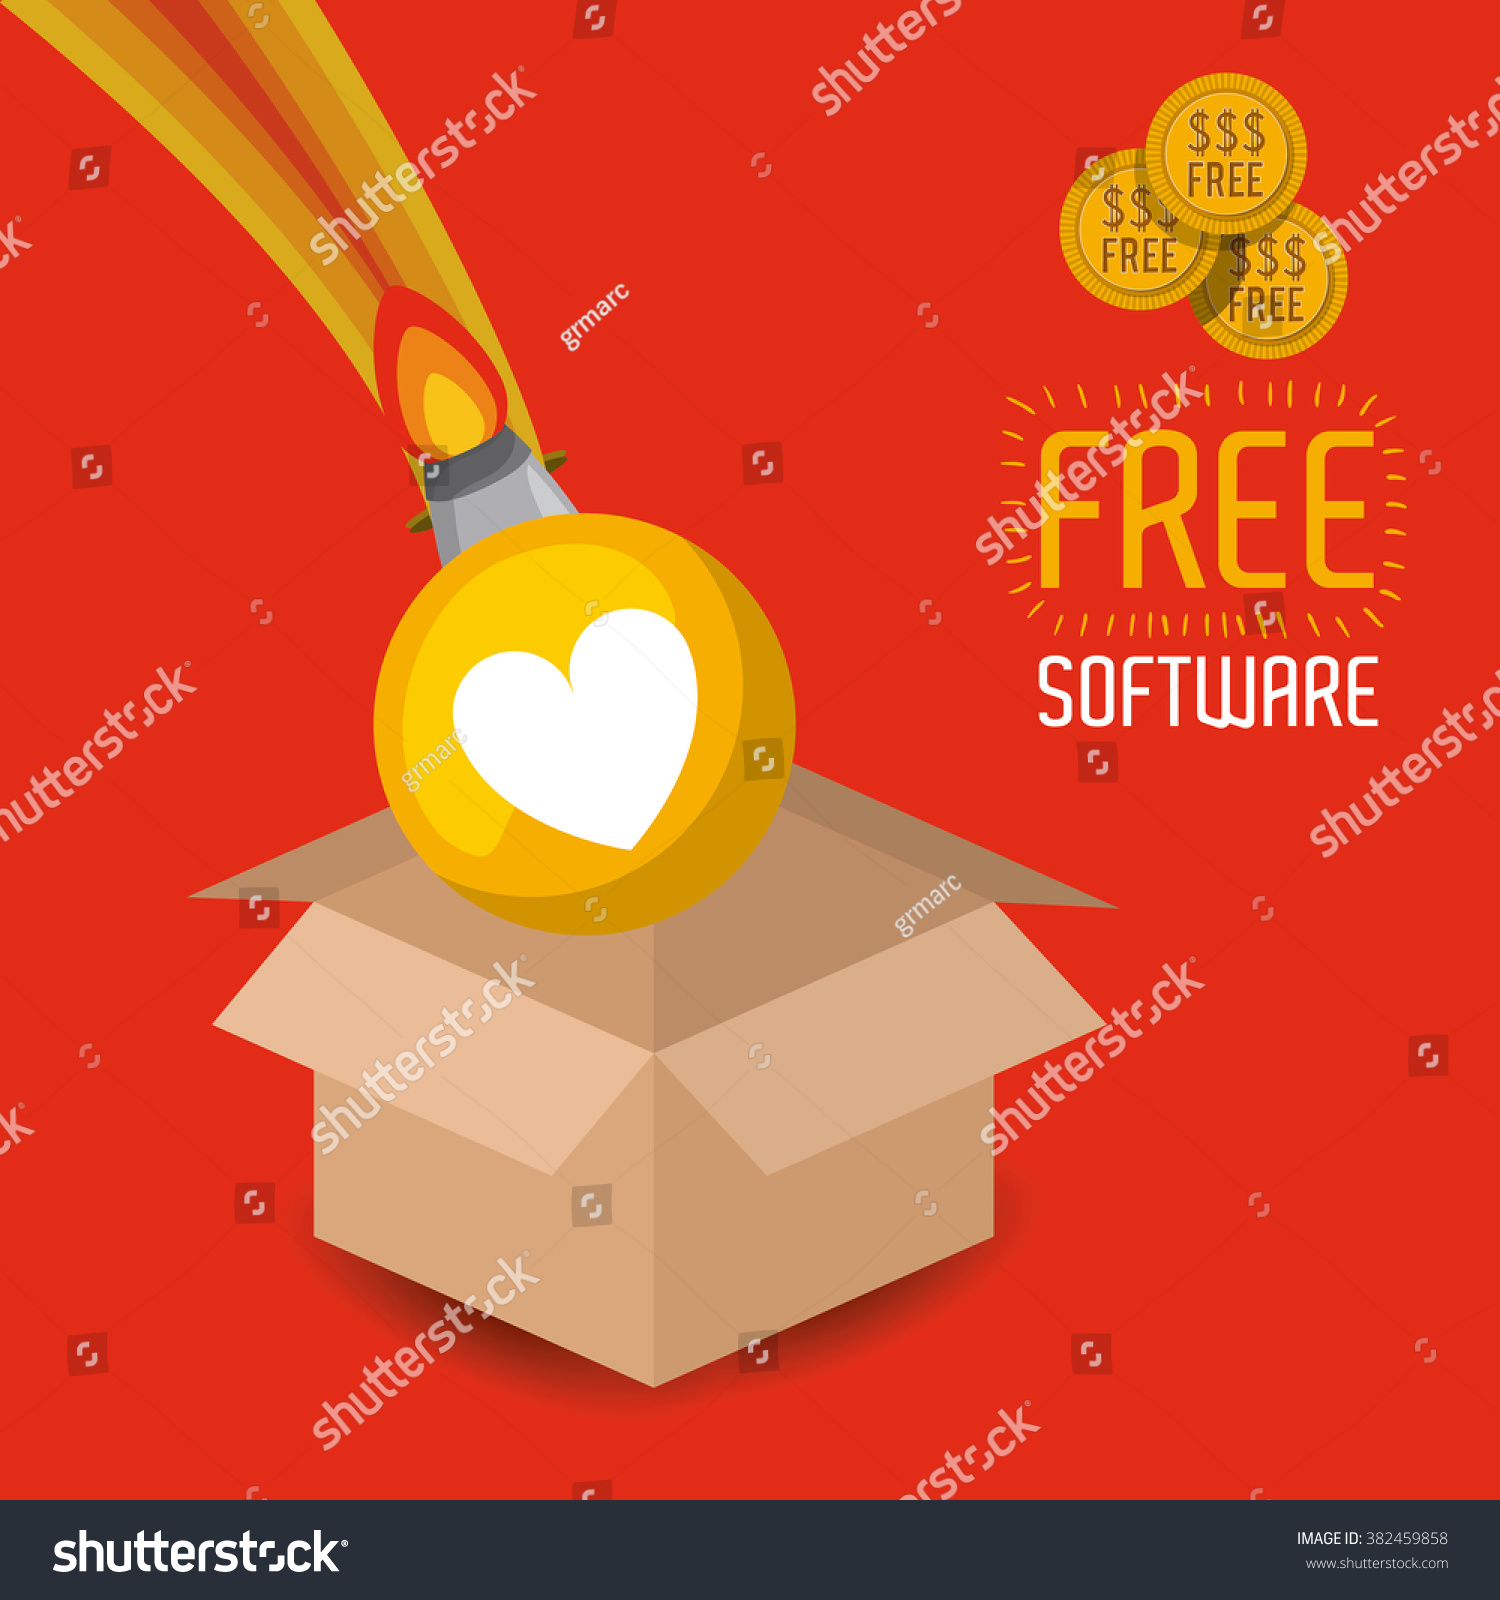 Free software design stock vector illustration 382459858 Vector image software